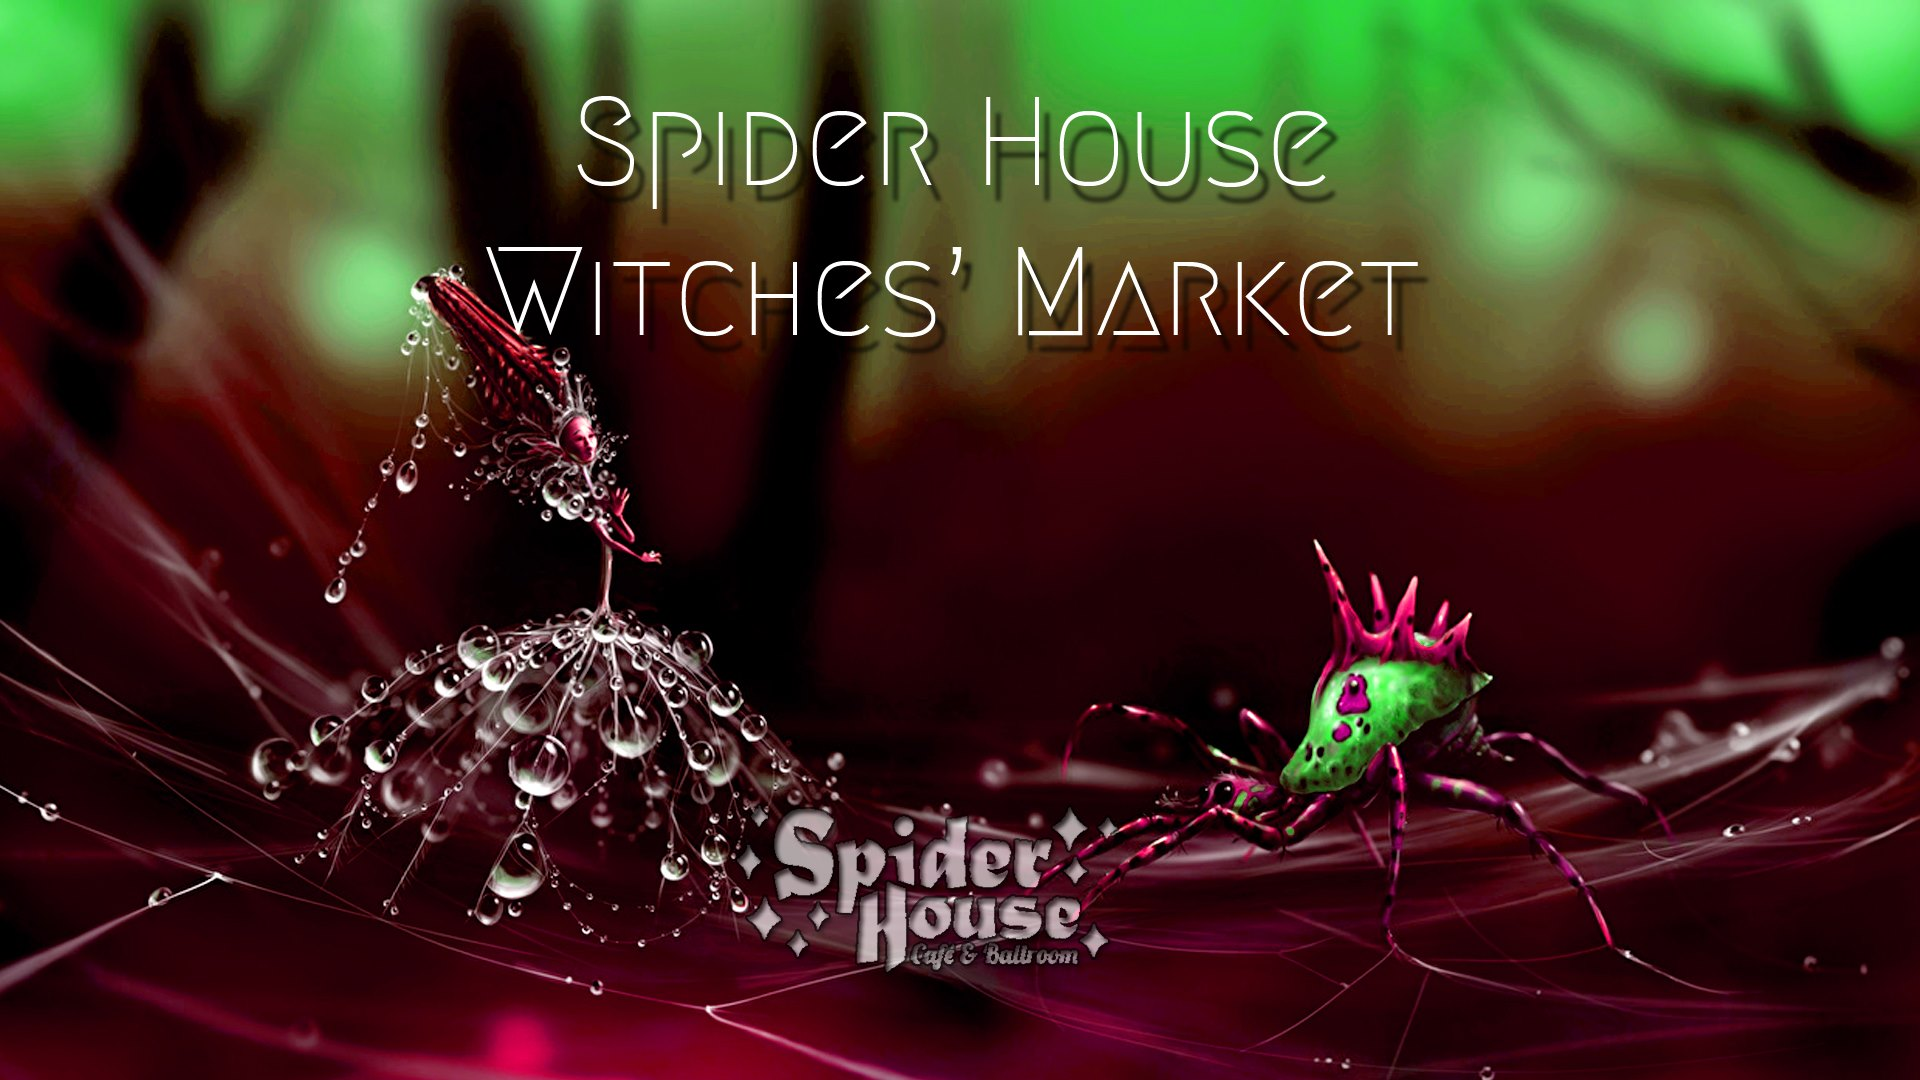 Spider House Witches' Market